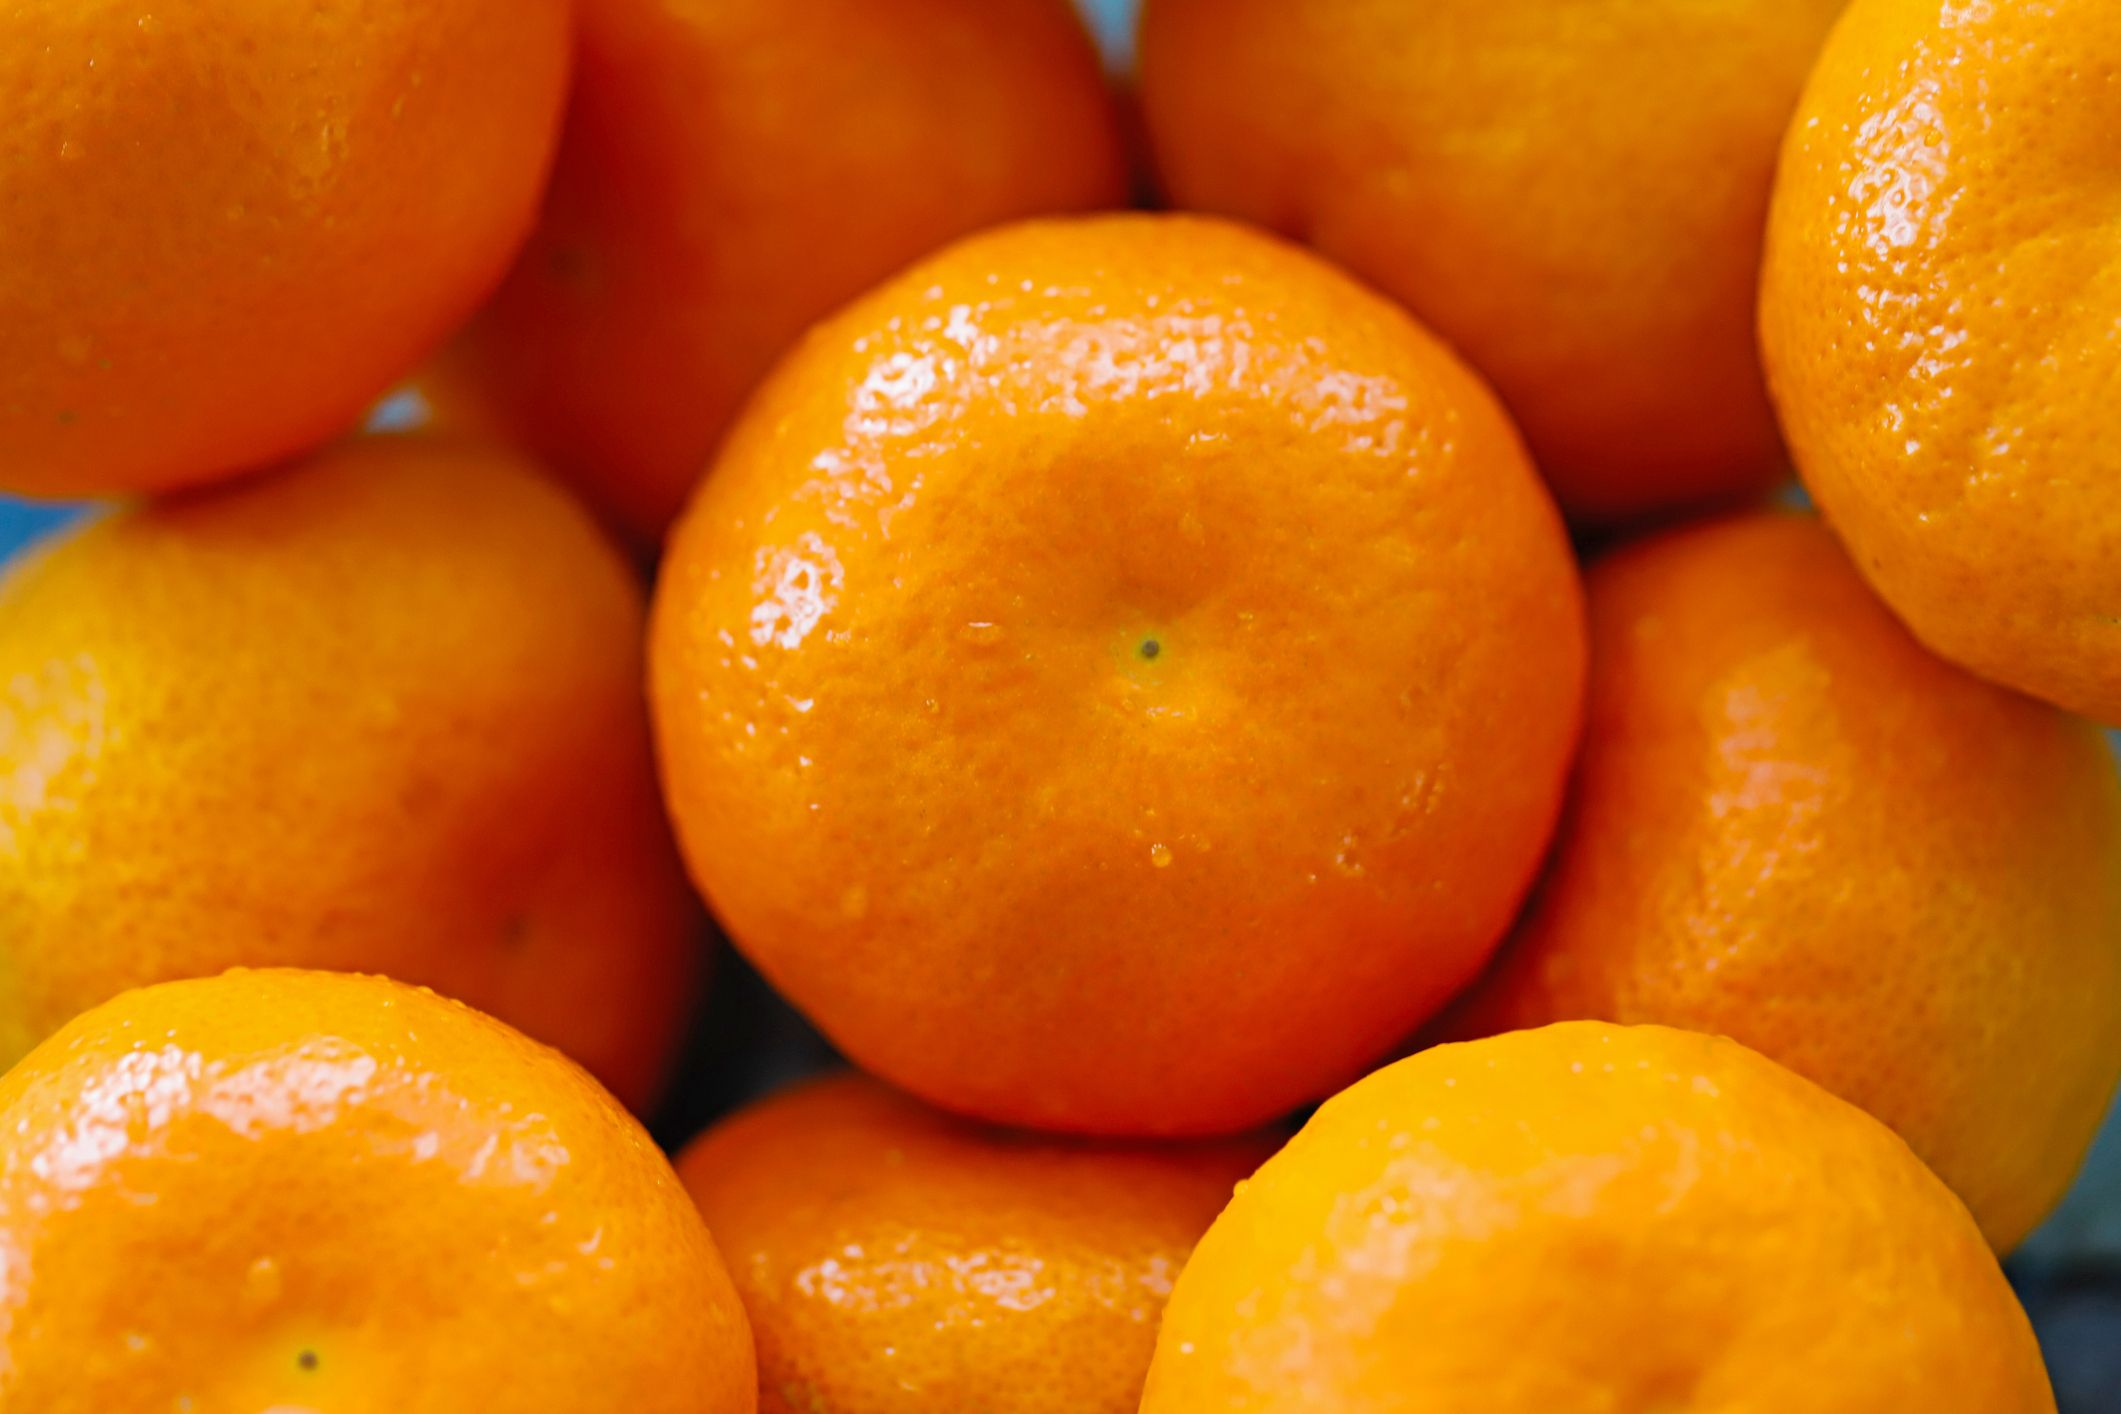 What Are The Benefits Of Tangerines? - Differences Between Oranges